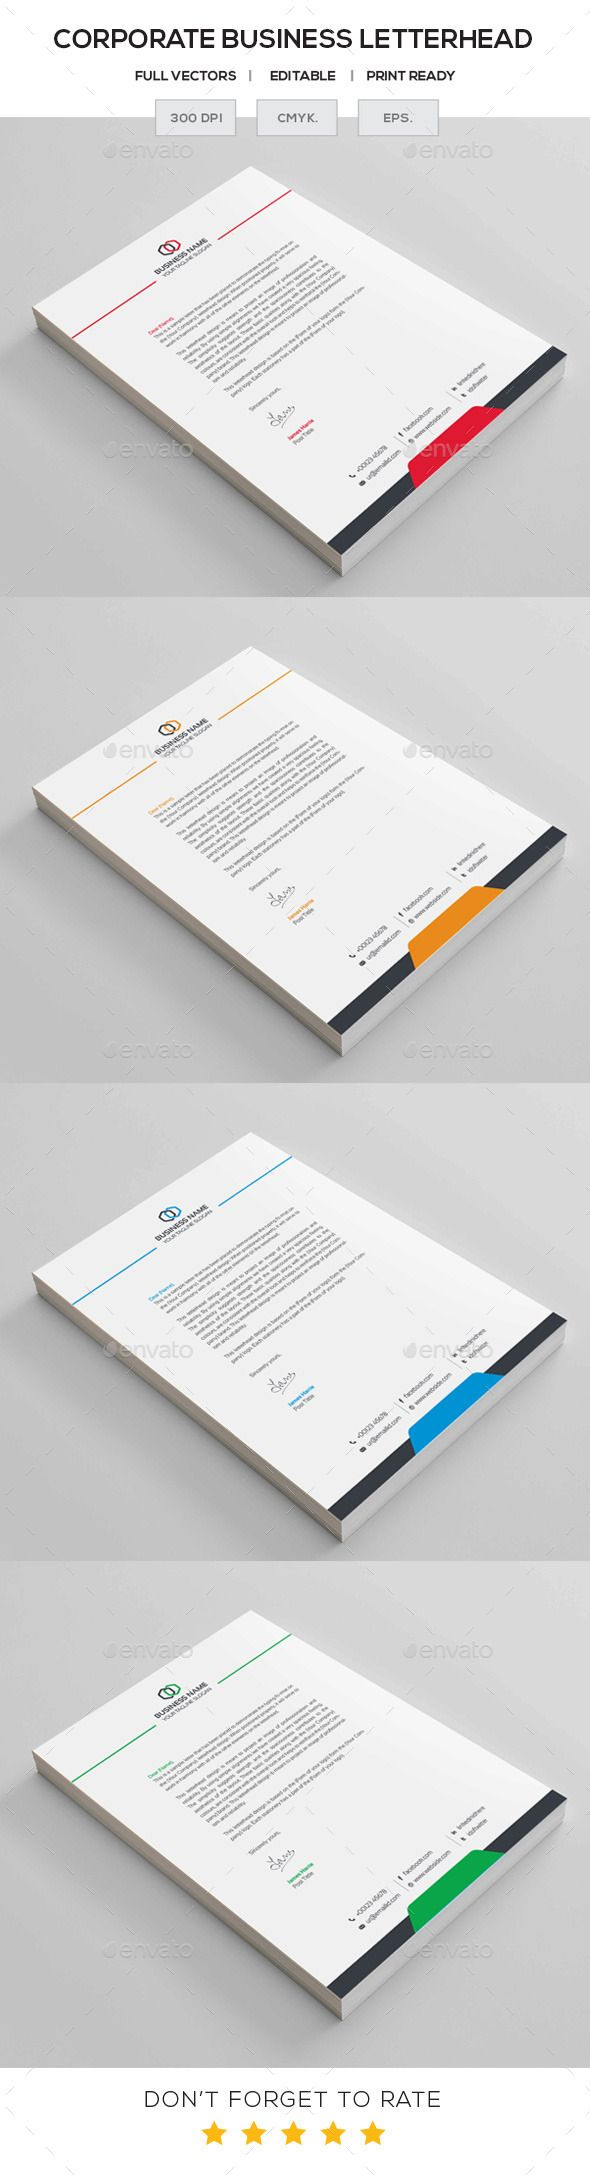 Business Letterhead - Stationery Print Templates                                                                                                                                                                                 More